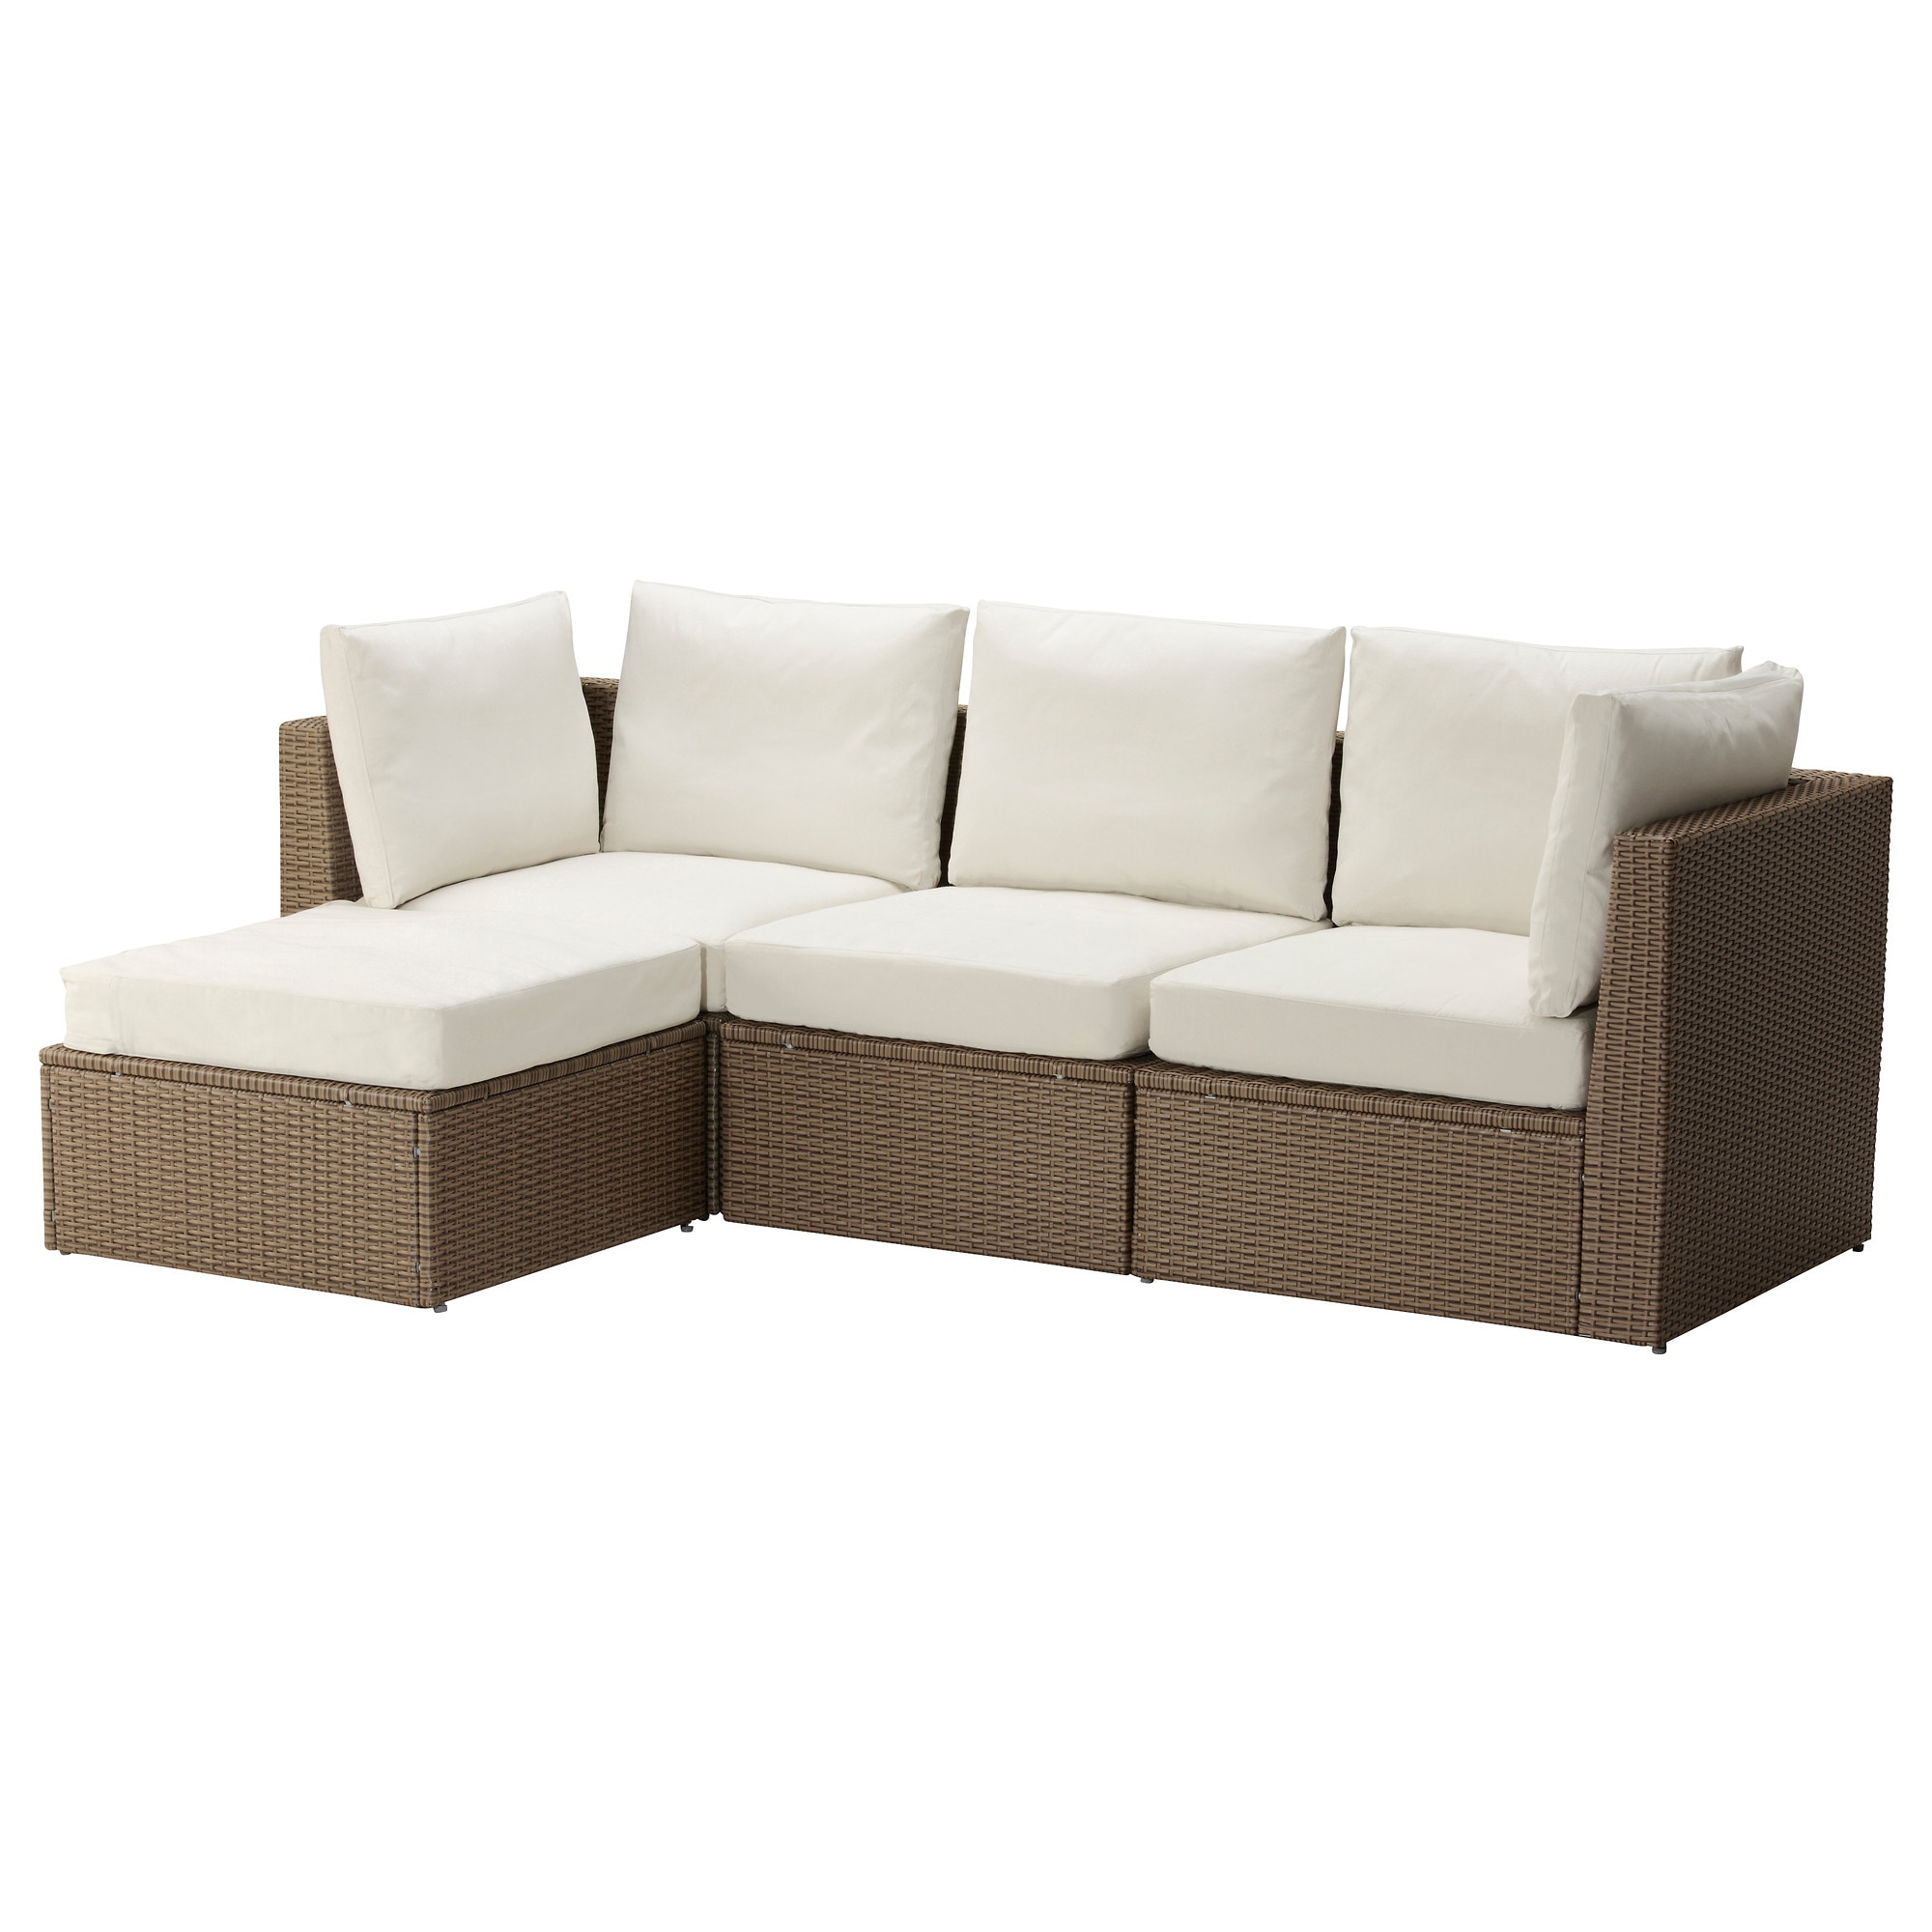 Attrayant Ikea Sofa Set